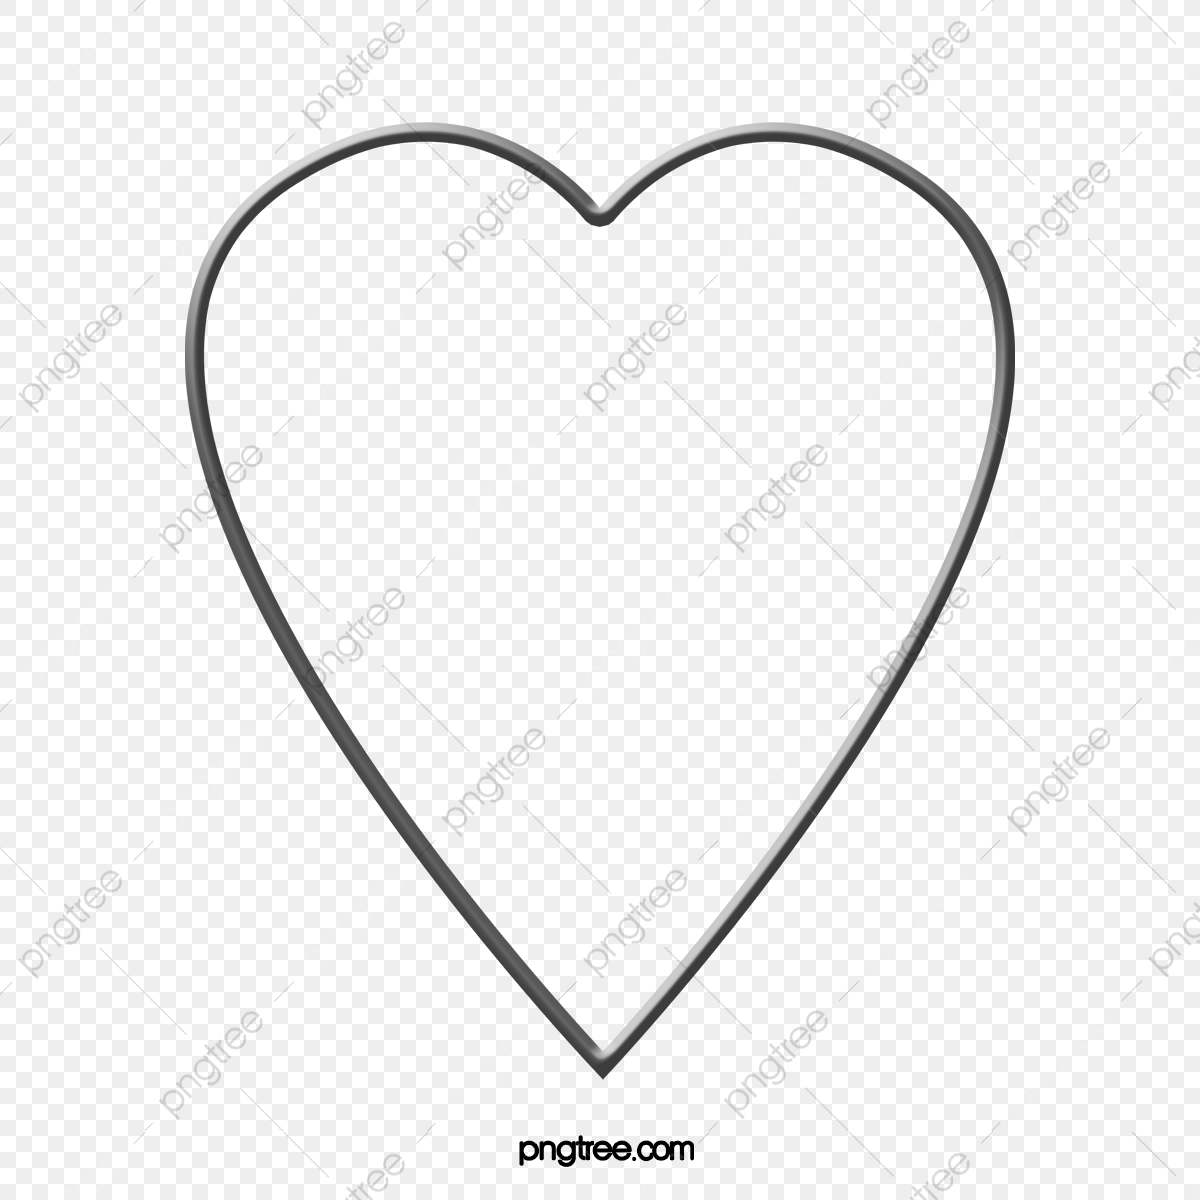 hight resolution of commercial use resource upgrade to premium plan and get license authorization upgradenow simple heart heart clipart black